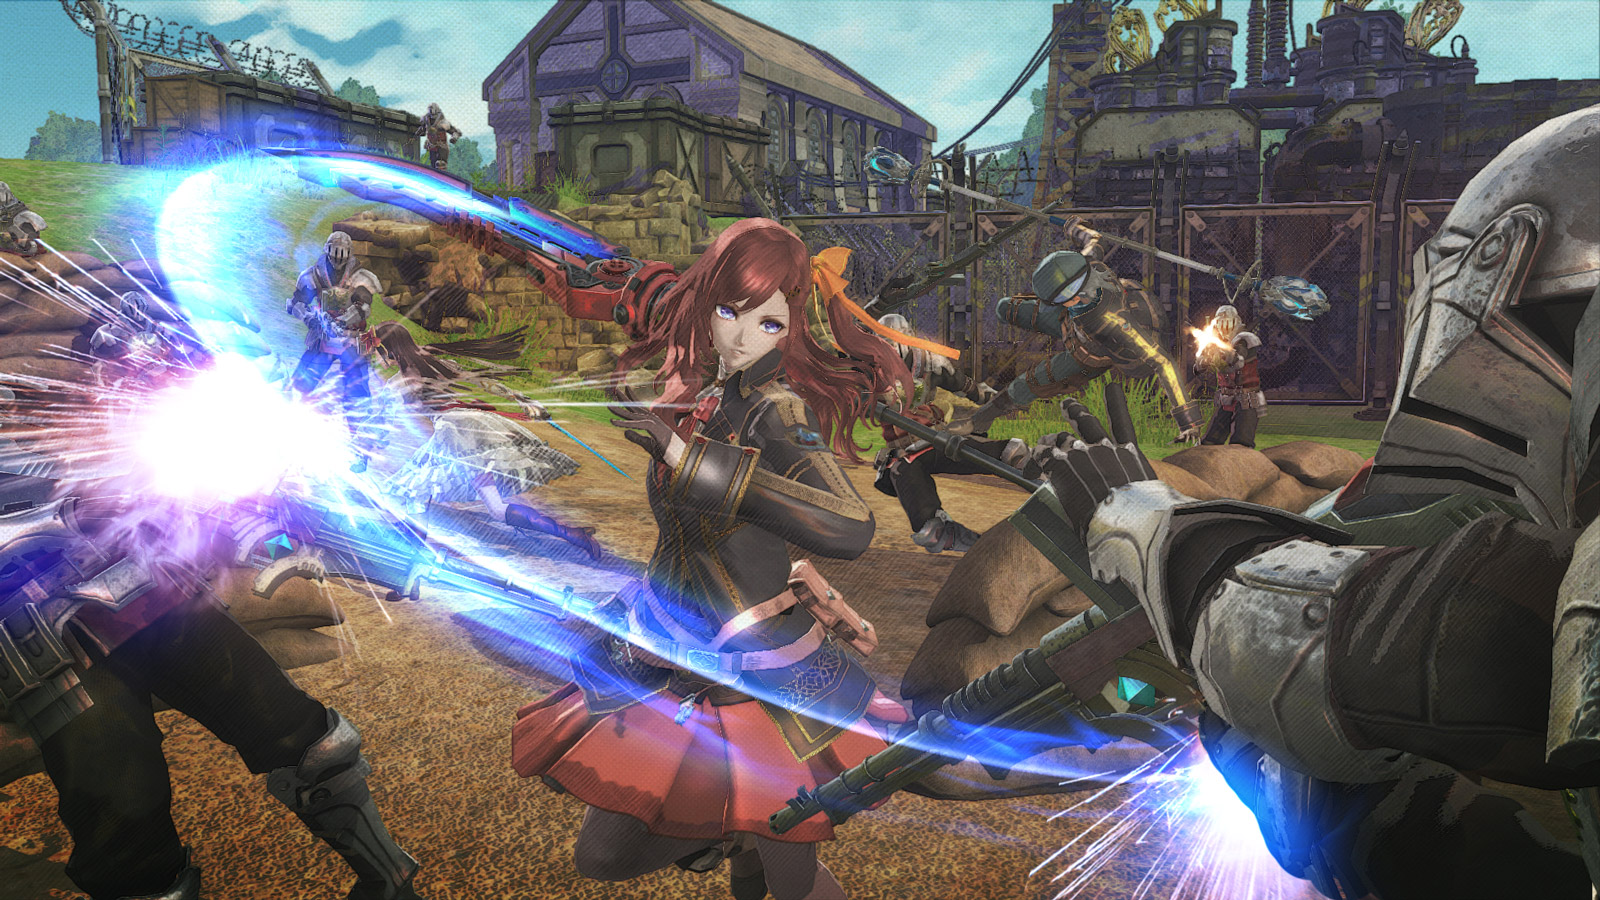 Valkyria Revolution looks promising!